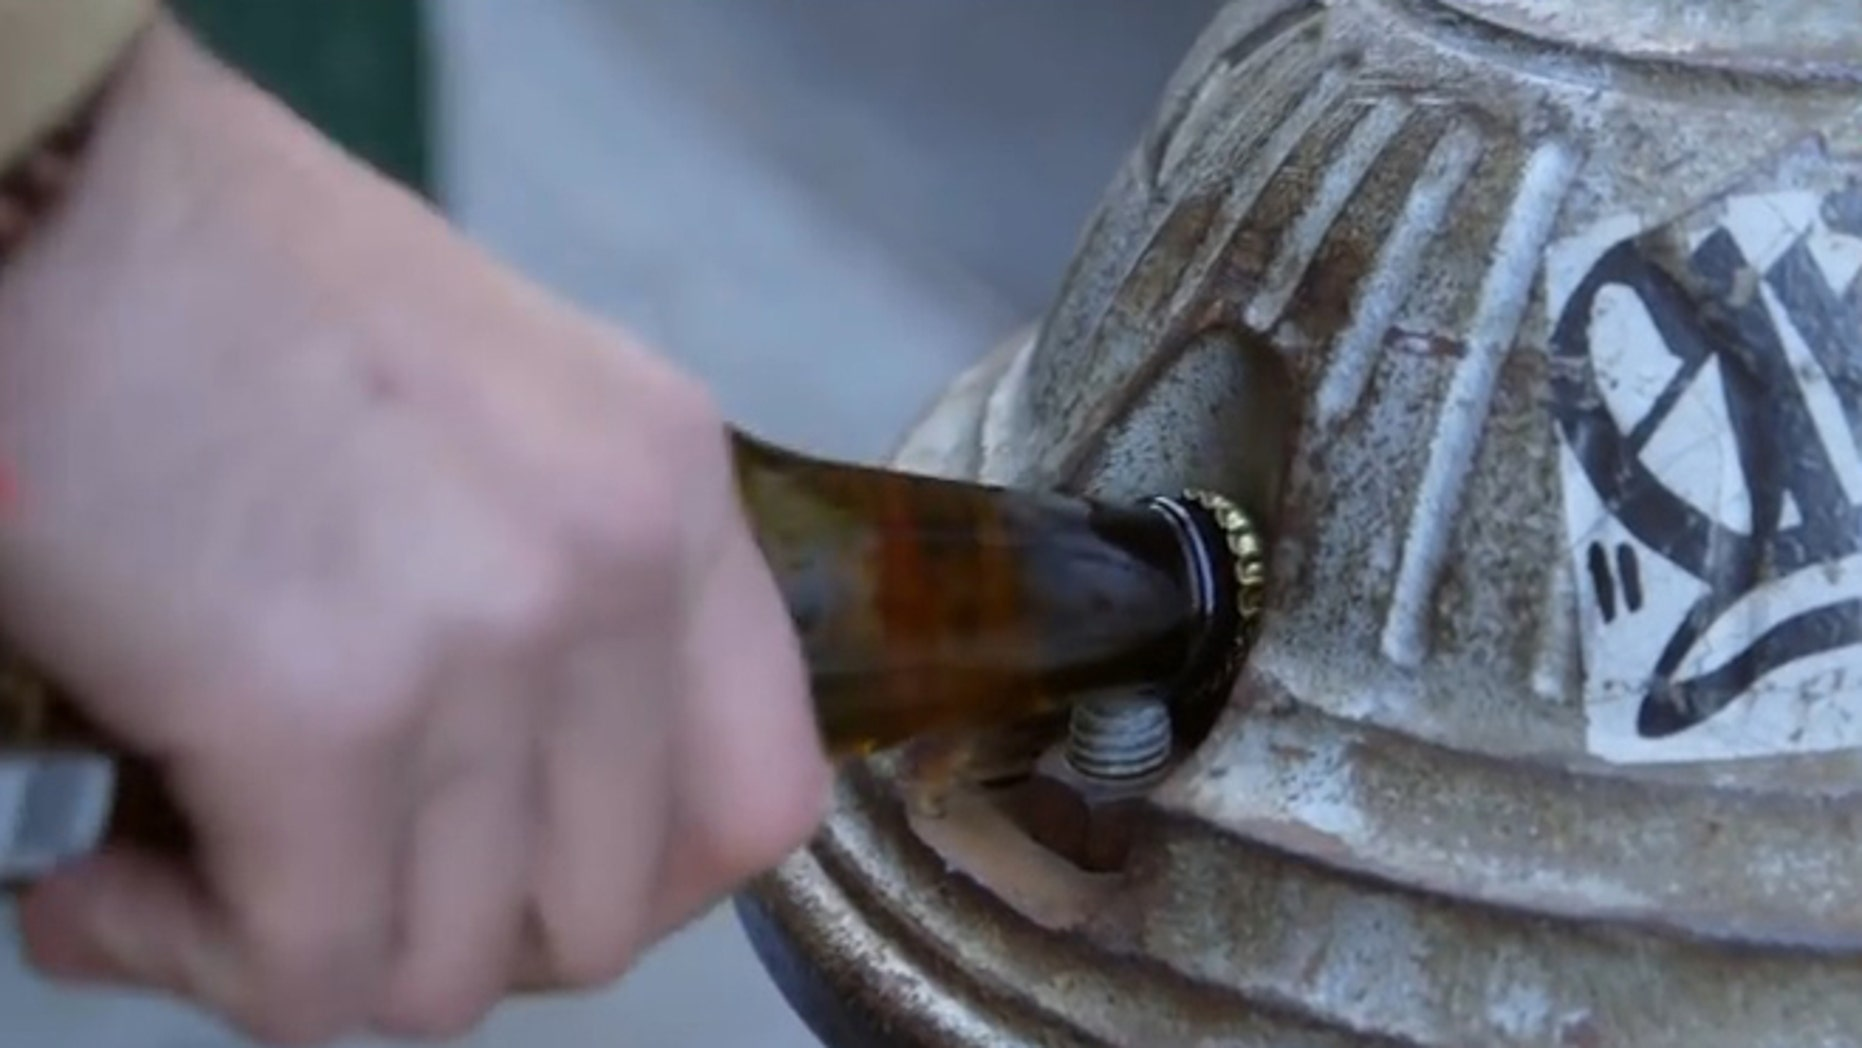 Inside or outside, never suffer from lack of a bottle opener again.